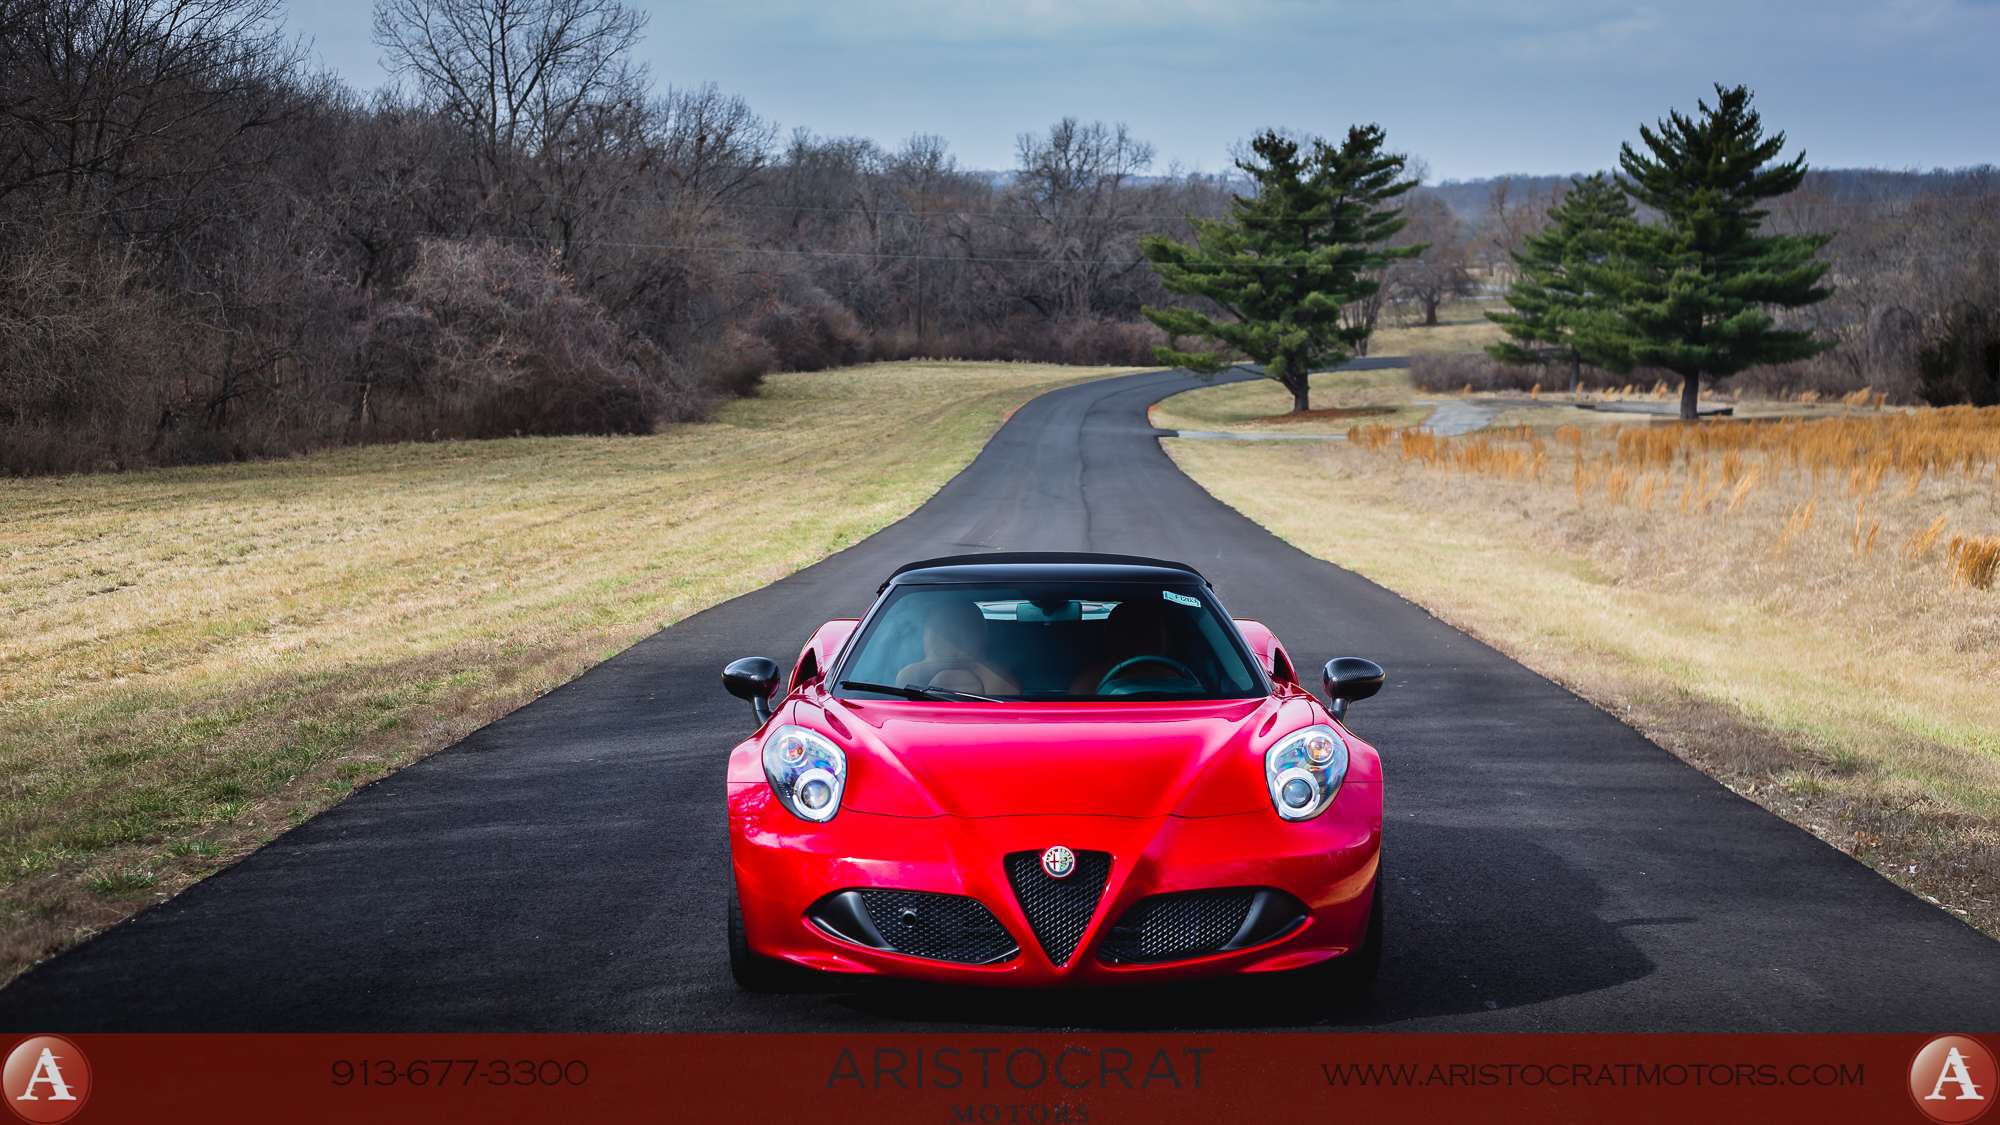 Aristocrat Motors Page 8 Of 14 Official Blog Alfa Romeo Umbrella The 4c Is Often Referred To As A Tiny Ferrari But Thats Not Just Because Italian Badge And Curvaceous Bodywork